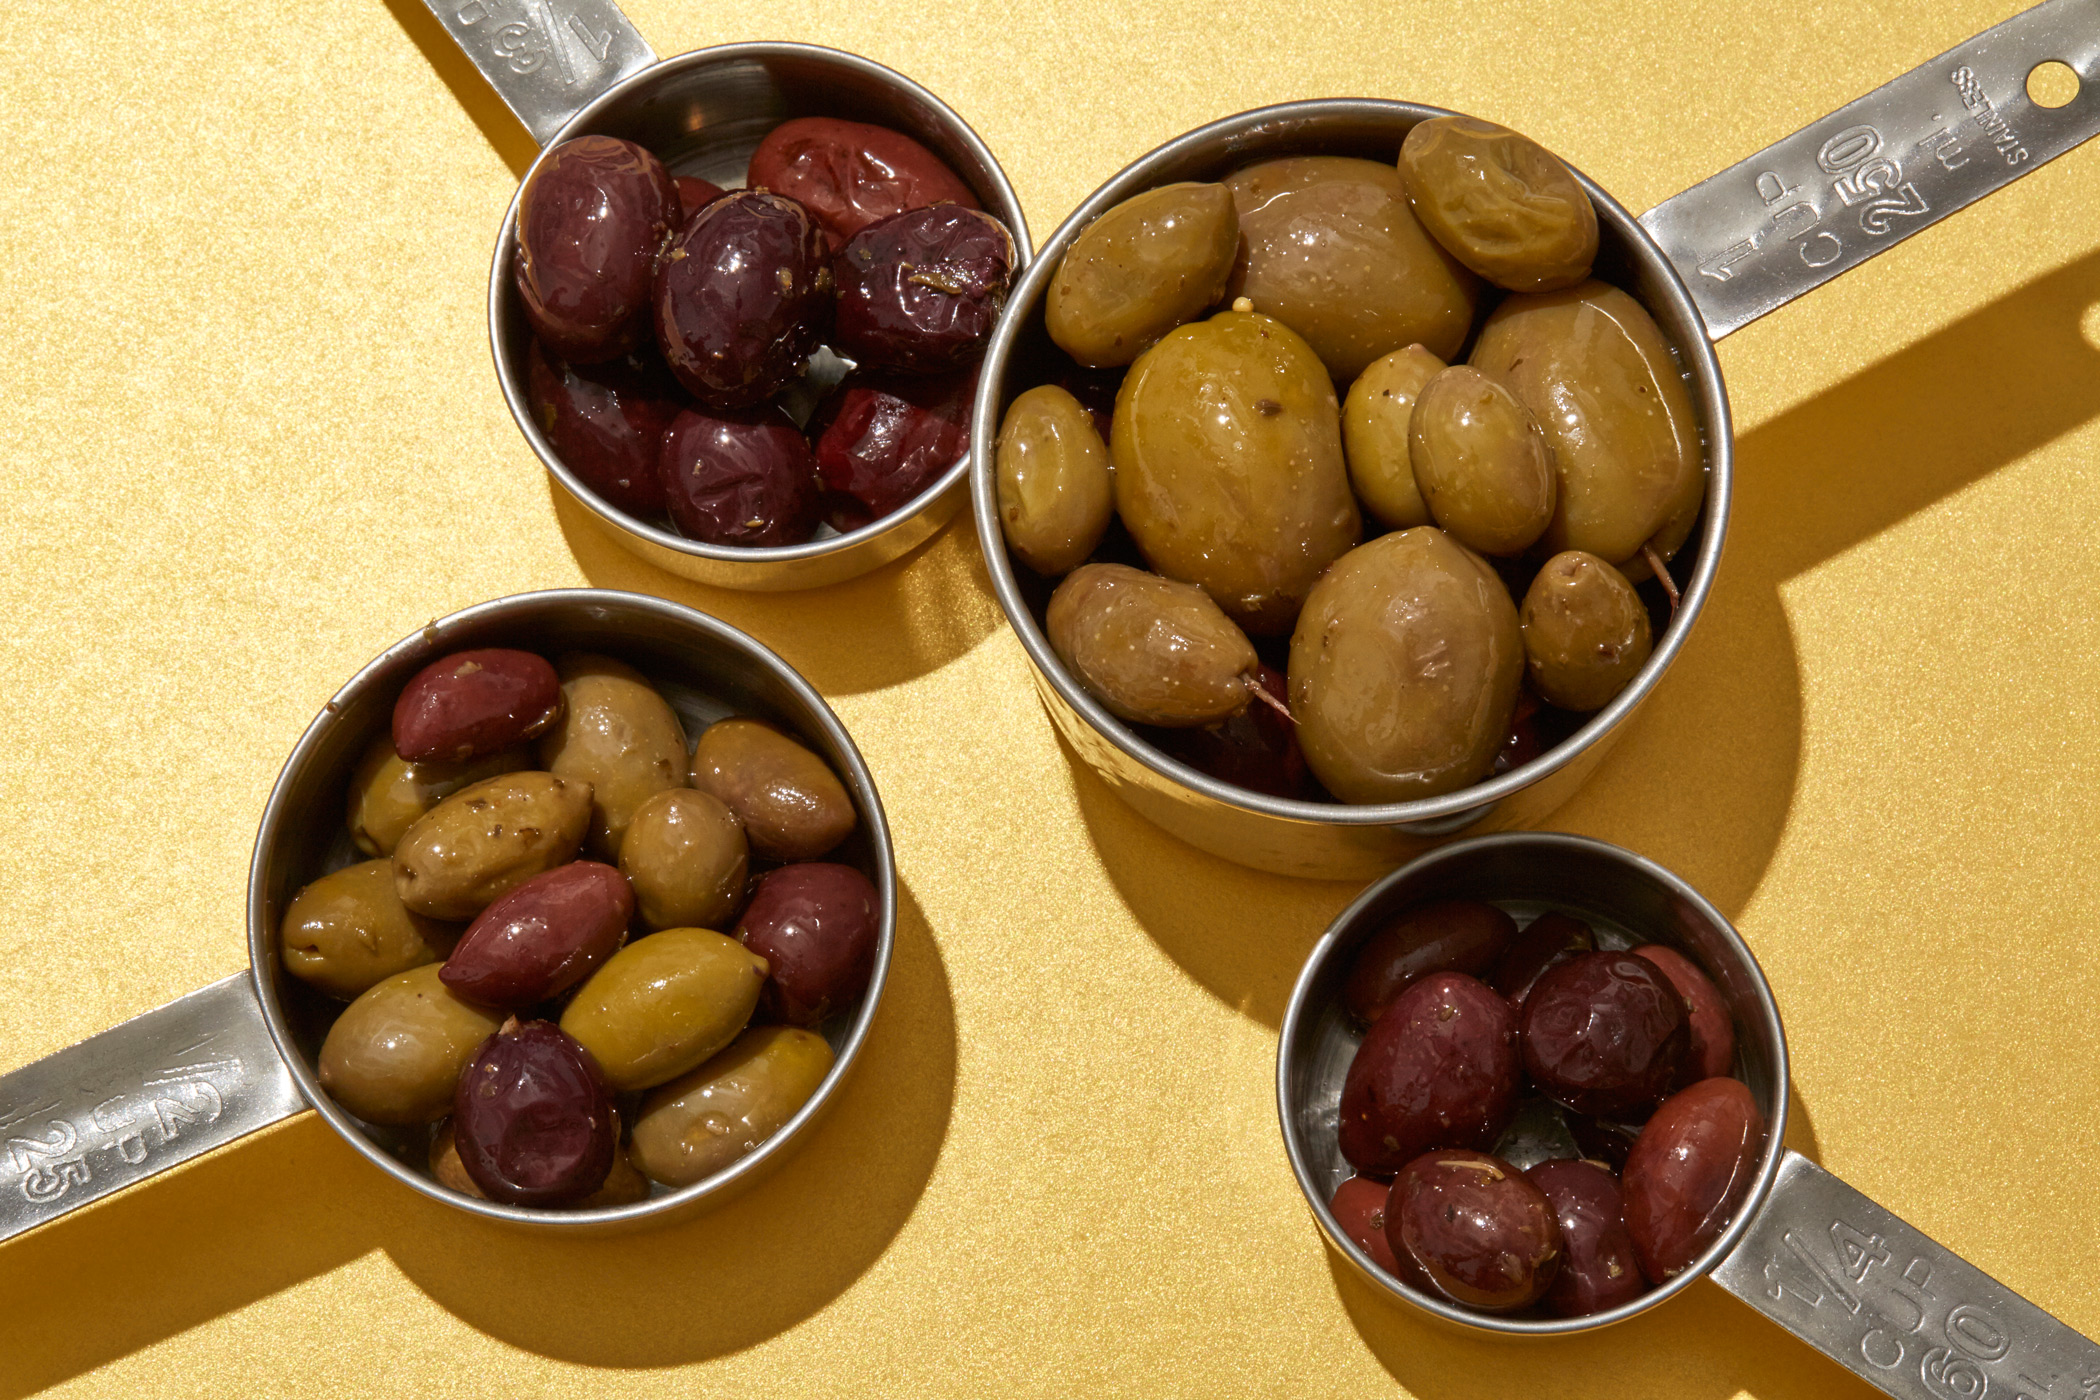 healthiest foods, health food, diet, nutrition, time.com stock, olives